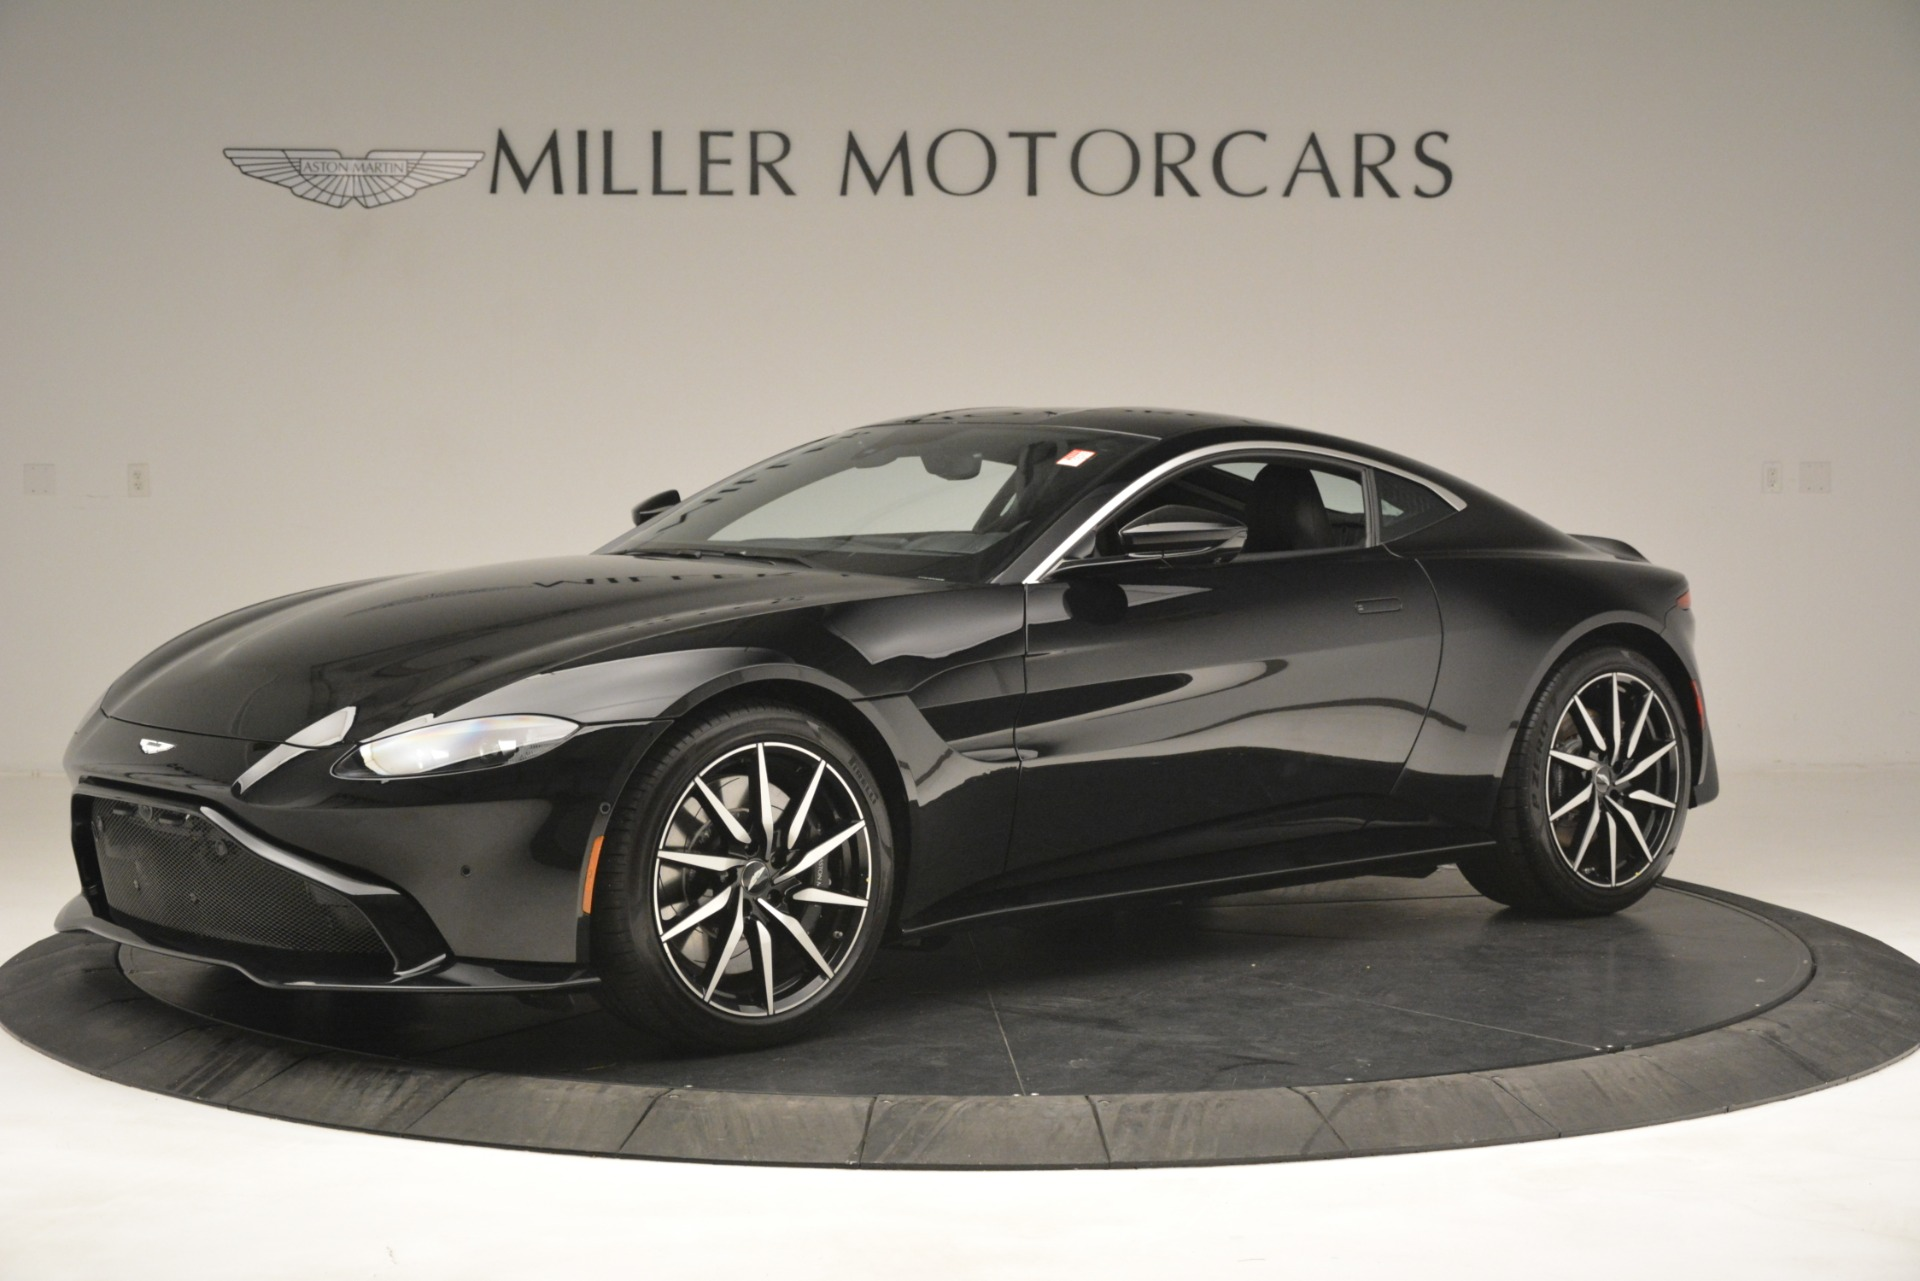 New 2019 Aston Martin Vantage Coupe for sale Sold at Pagani of Greenwich in Greenwich CT 06830 1